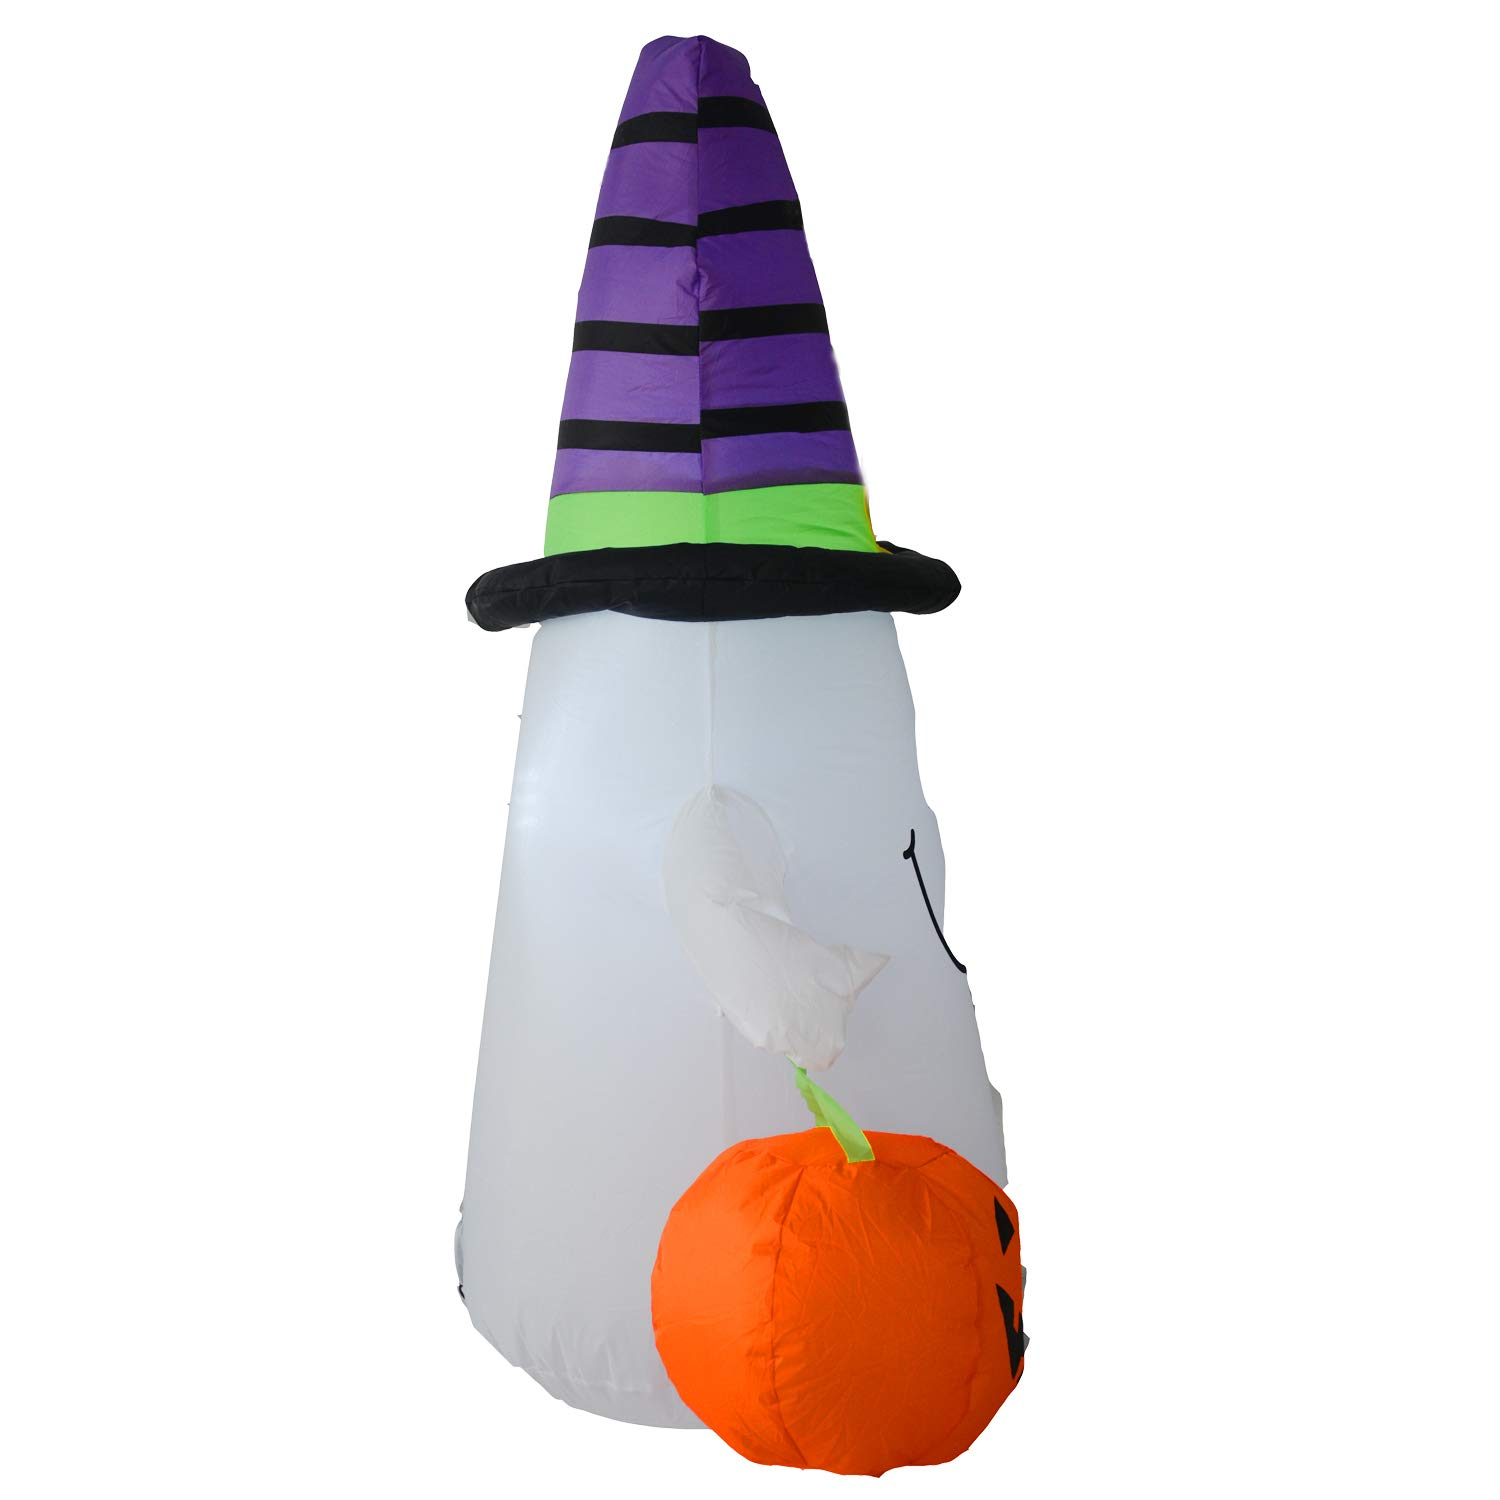 DIGIANT 4 Foot Halloween Inflatable Air Blown Ghost with Jack-O-Lantern Pumpkin//Witch Hat Lighted for Home Yard Garden Indoor and Outdoor Decorations